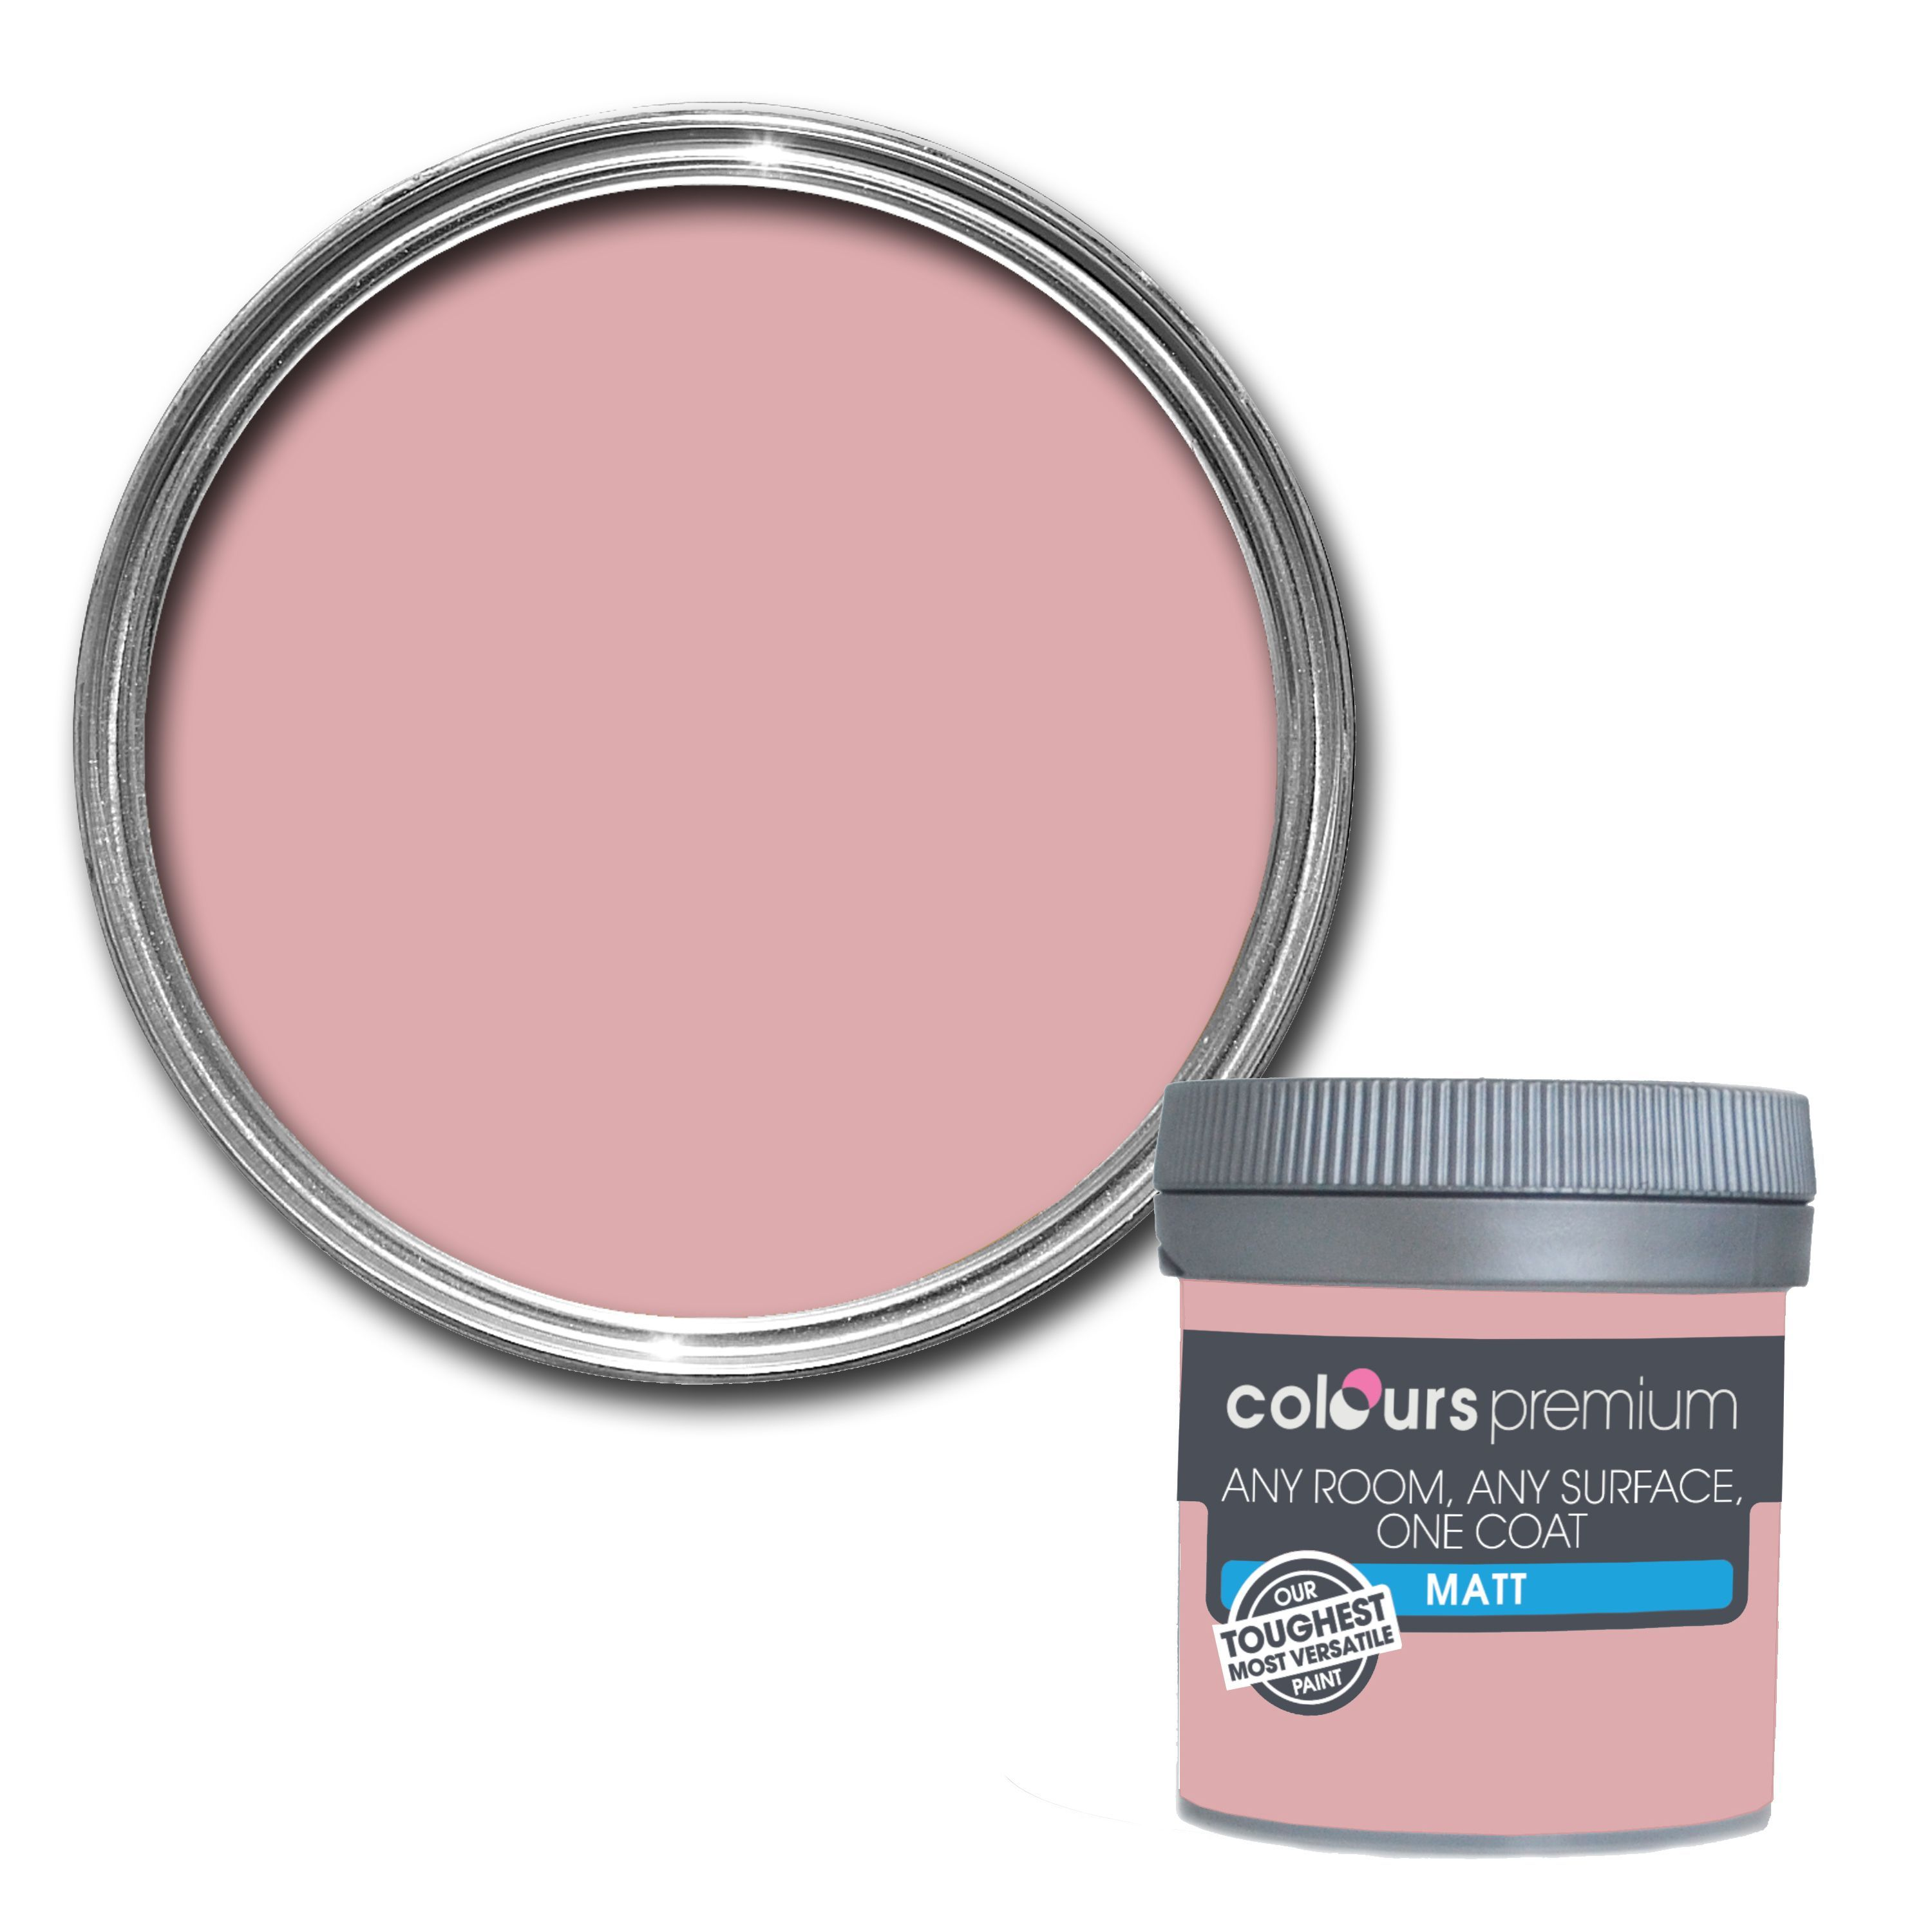 Colours Premium Any Room One Coat Powder Pink Emulsion Paint 50ml Tester Pot Departments Diy At B Q Pink Paint B Q Colours